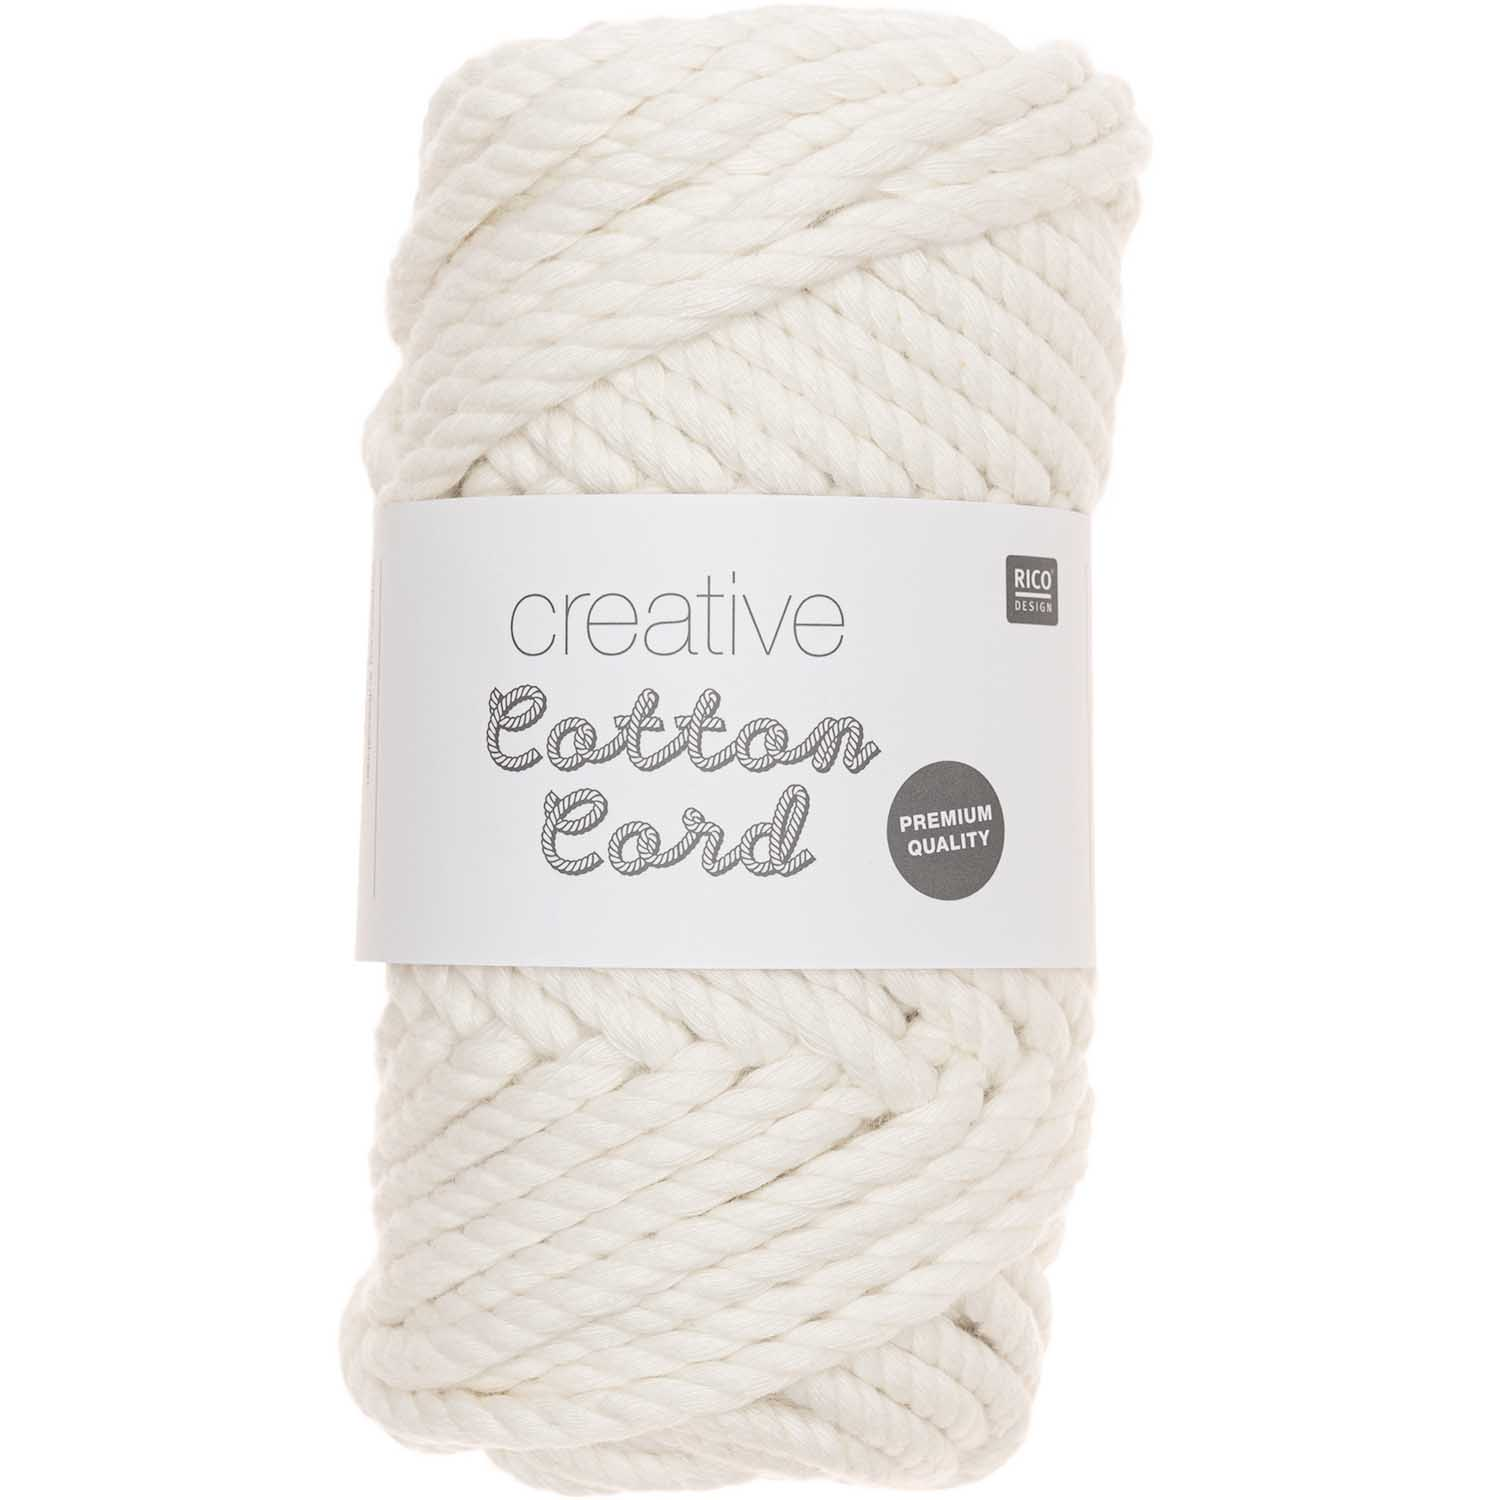 CREATIVE COTTON CORD 130G 25M, creme